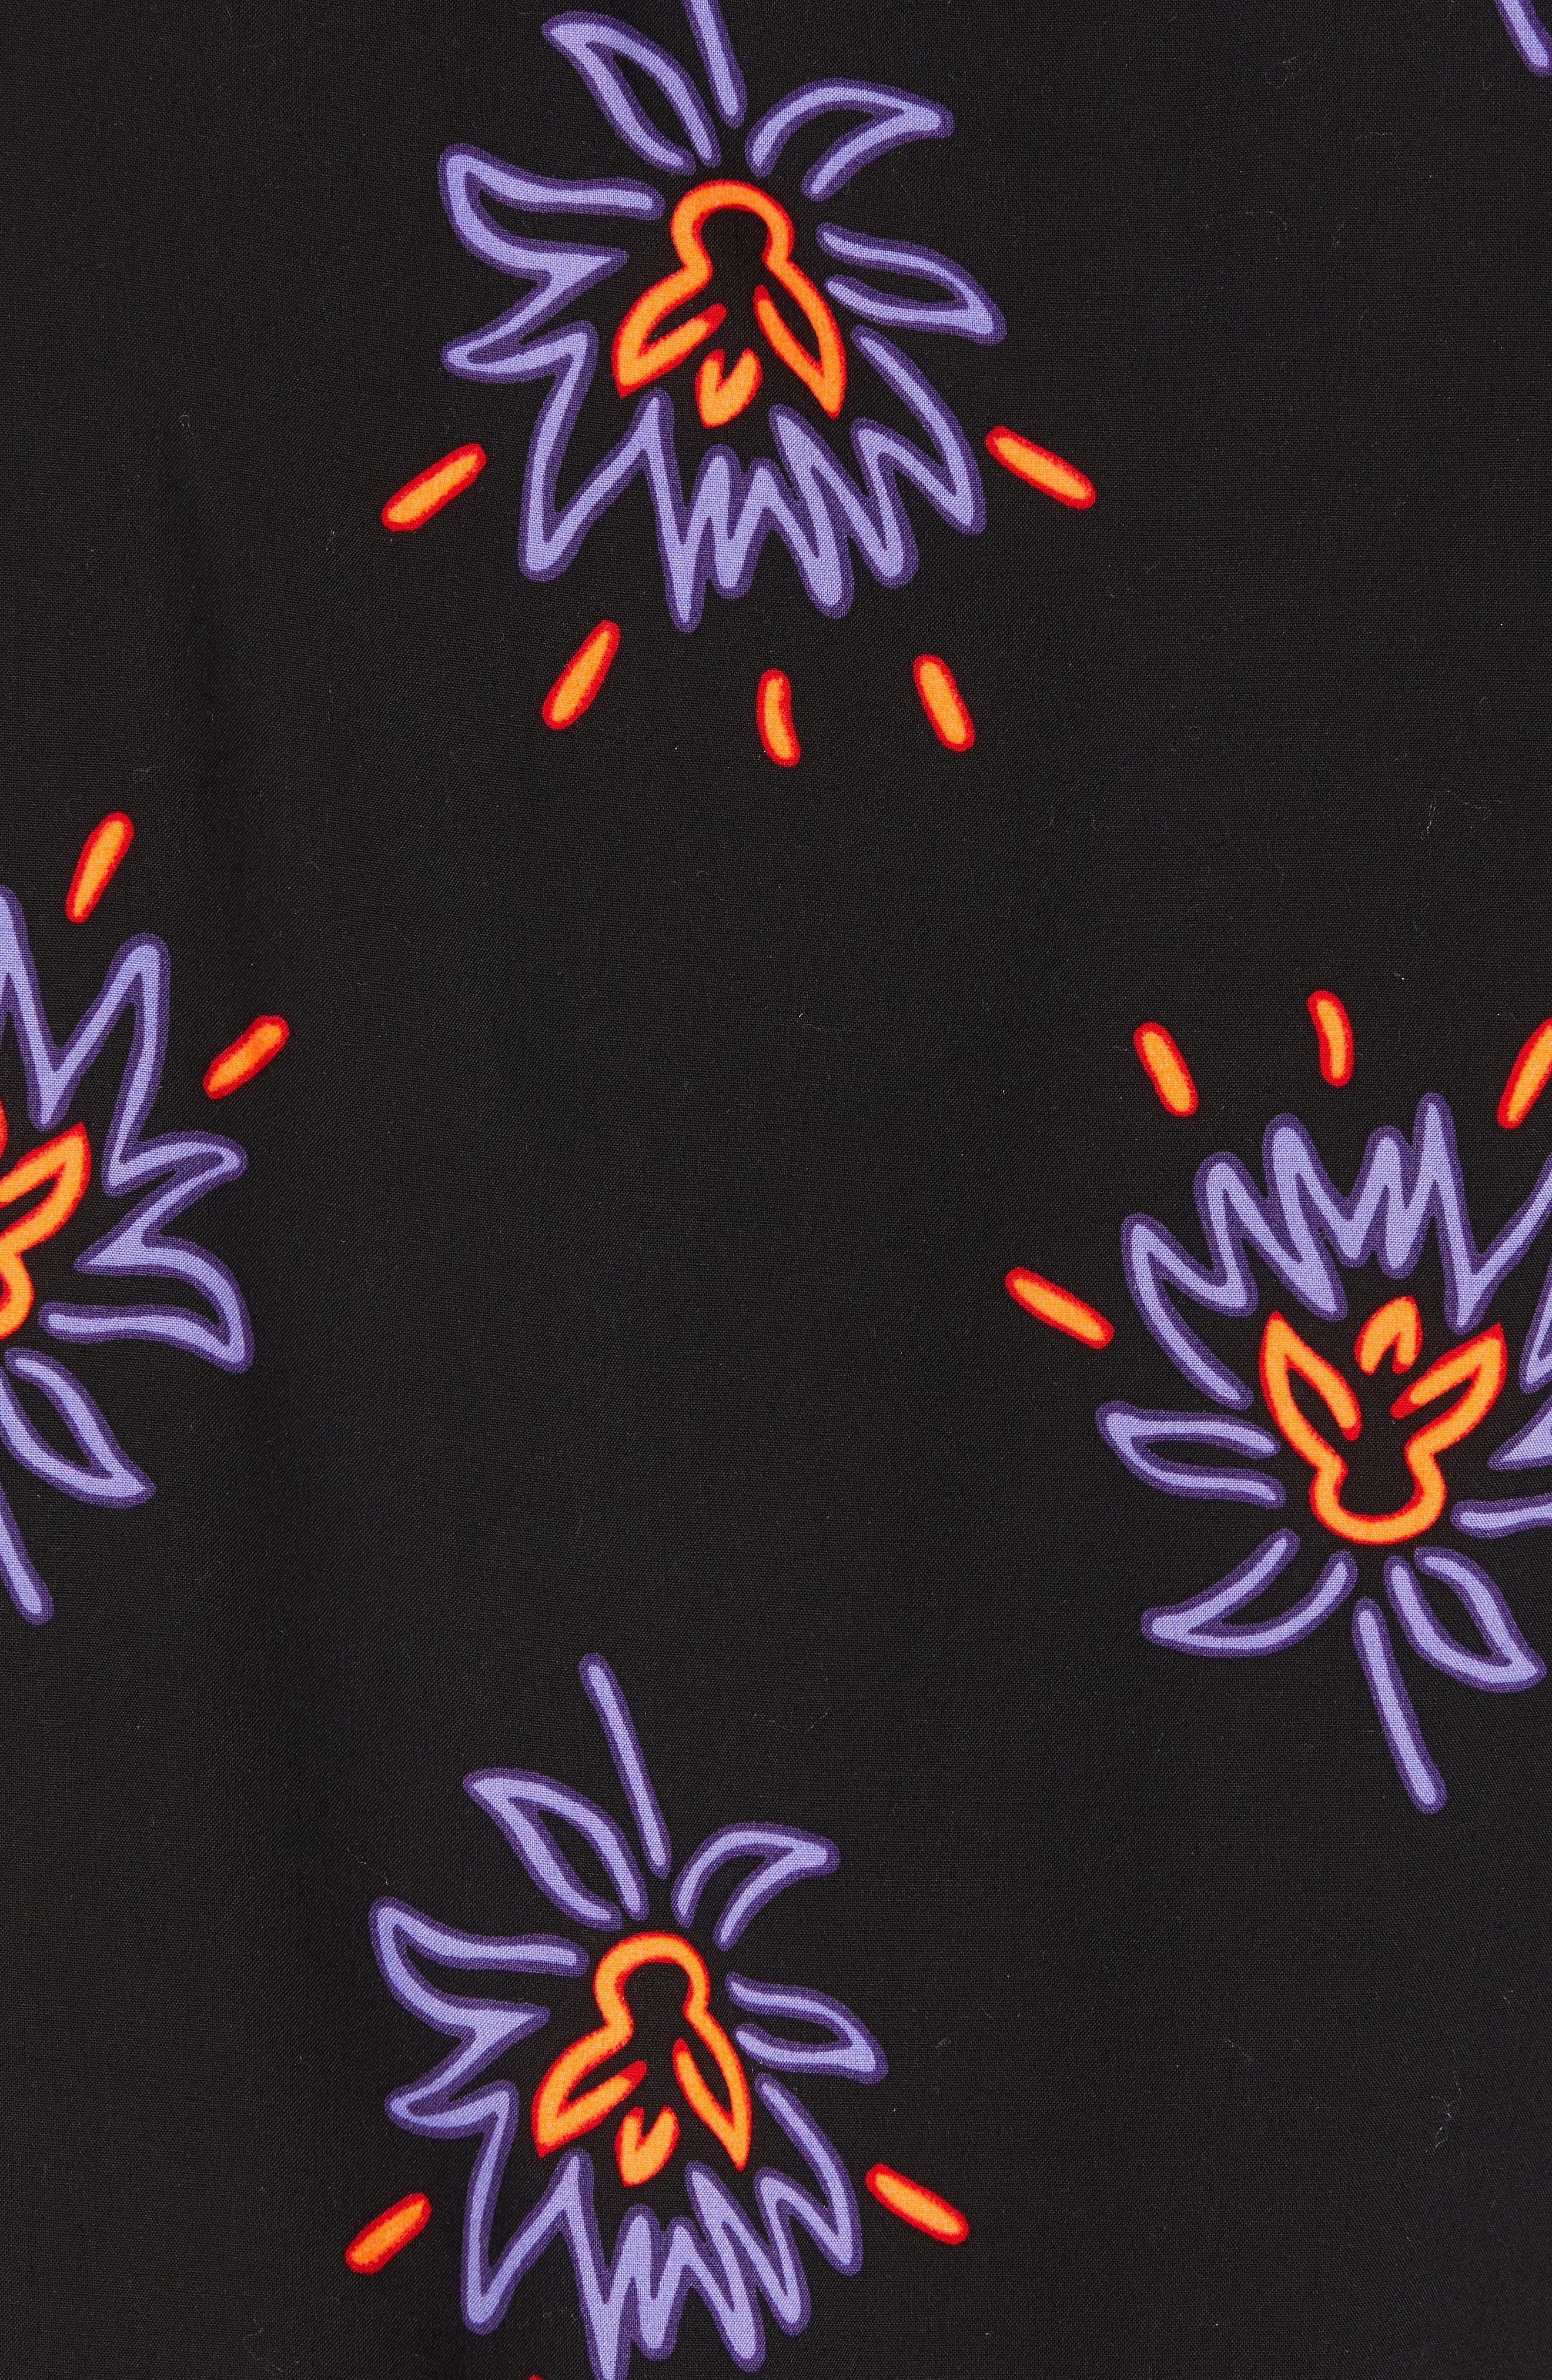 Neon Flower Print Woven Shirt,                             Alternate thumbnail 5, color,                             BLACK PURPLE NEON FLORAL